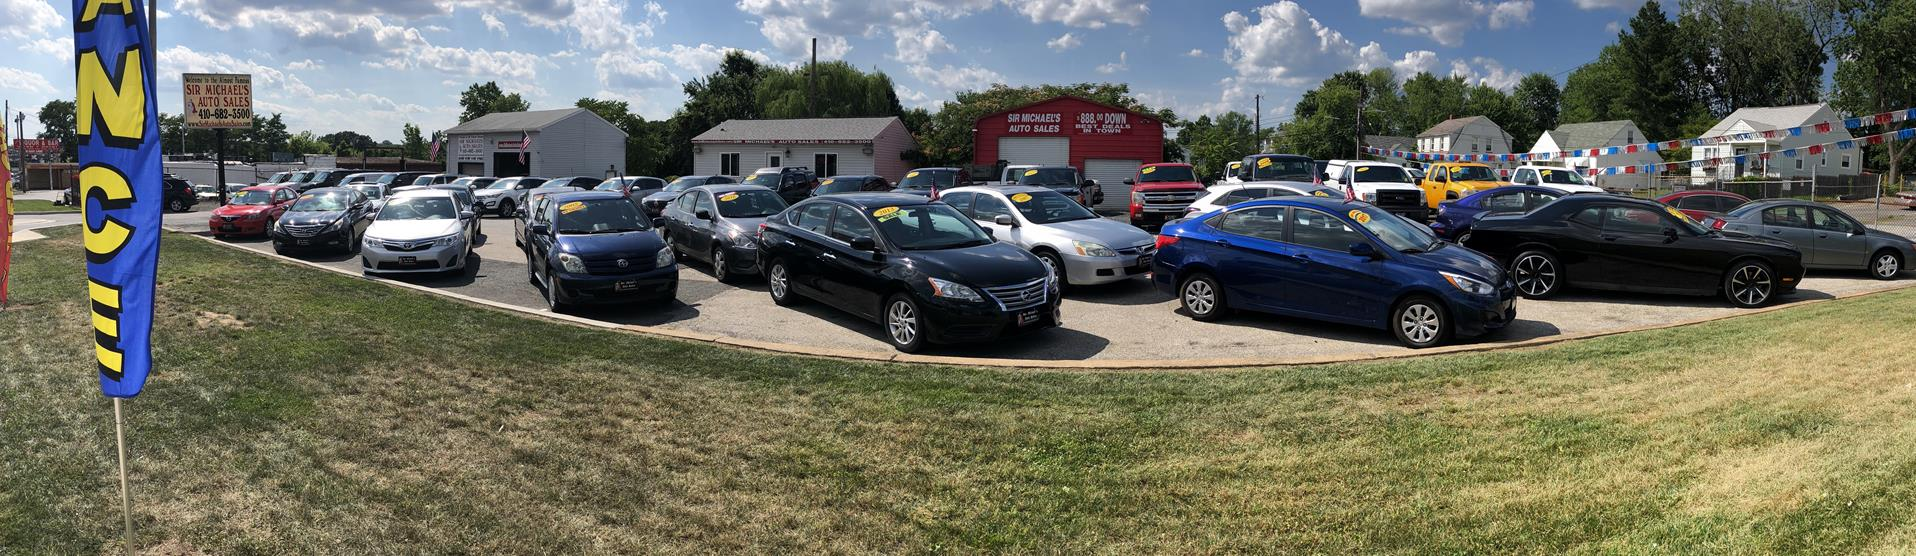 Used Trucks For Sale In Md >> Used Cars Baltimore Md Used Cars Trucks Md Sir